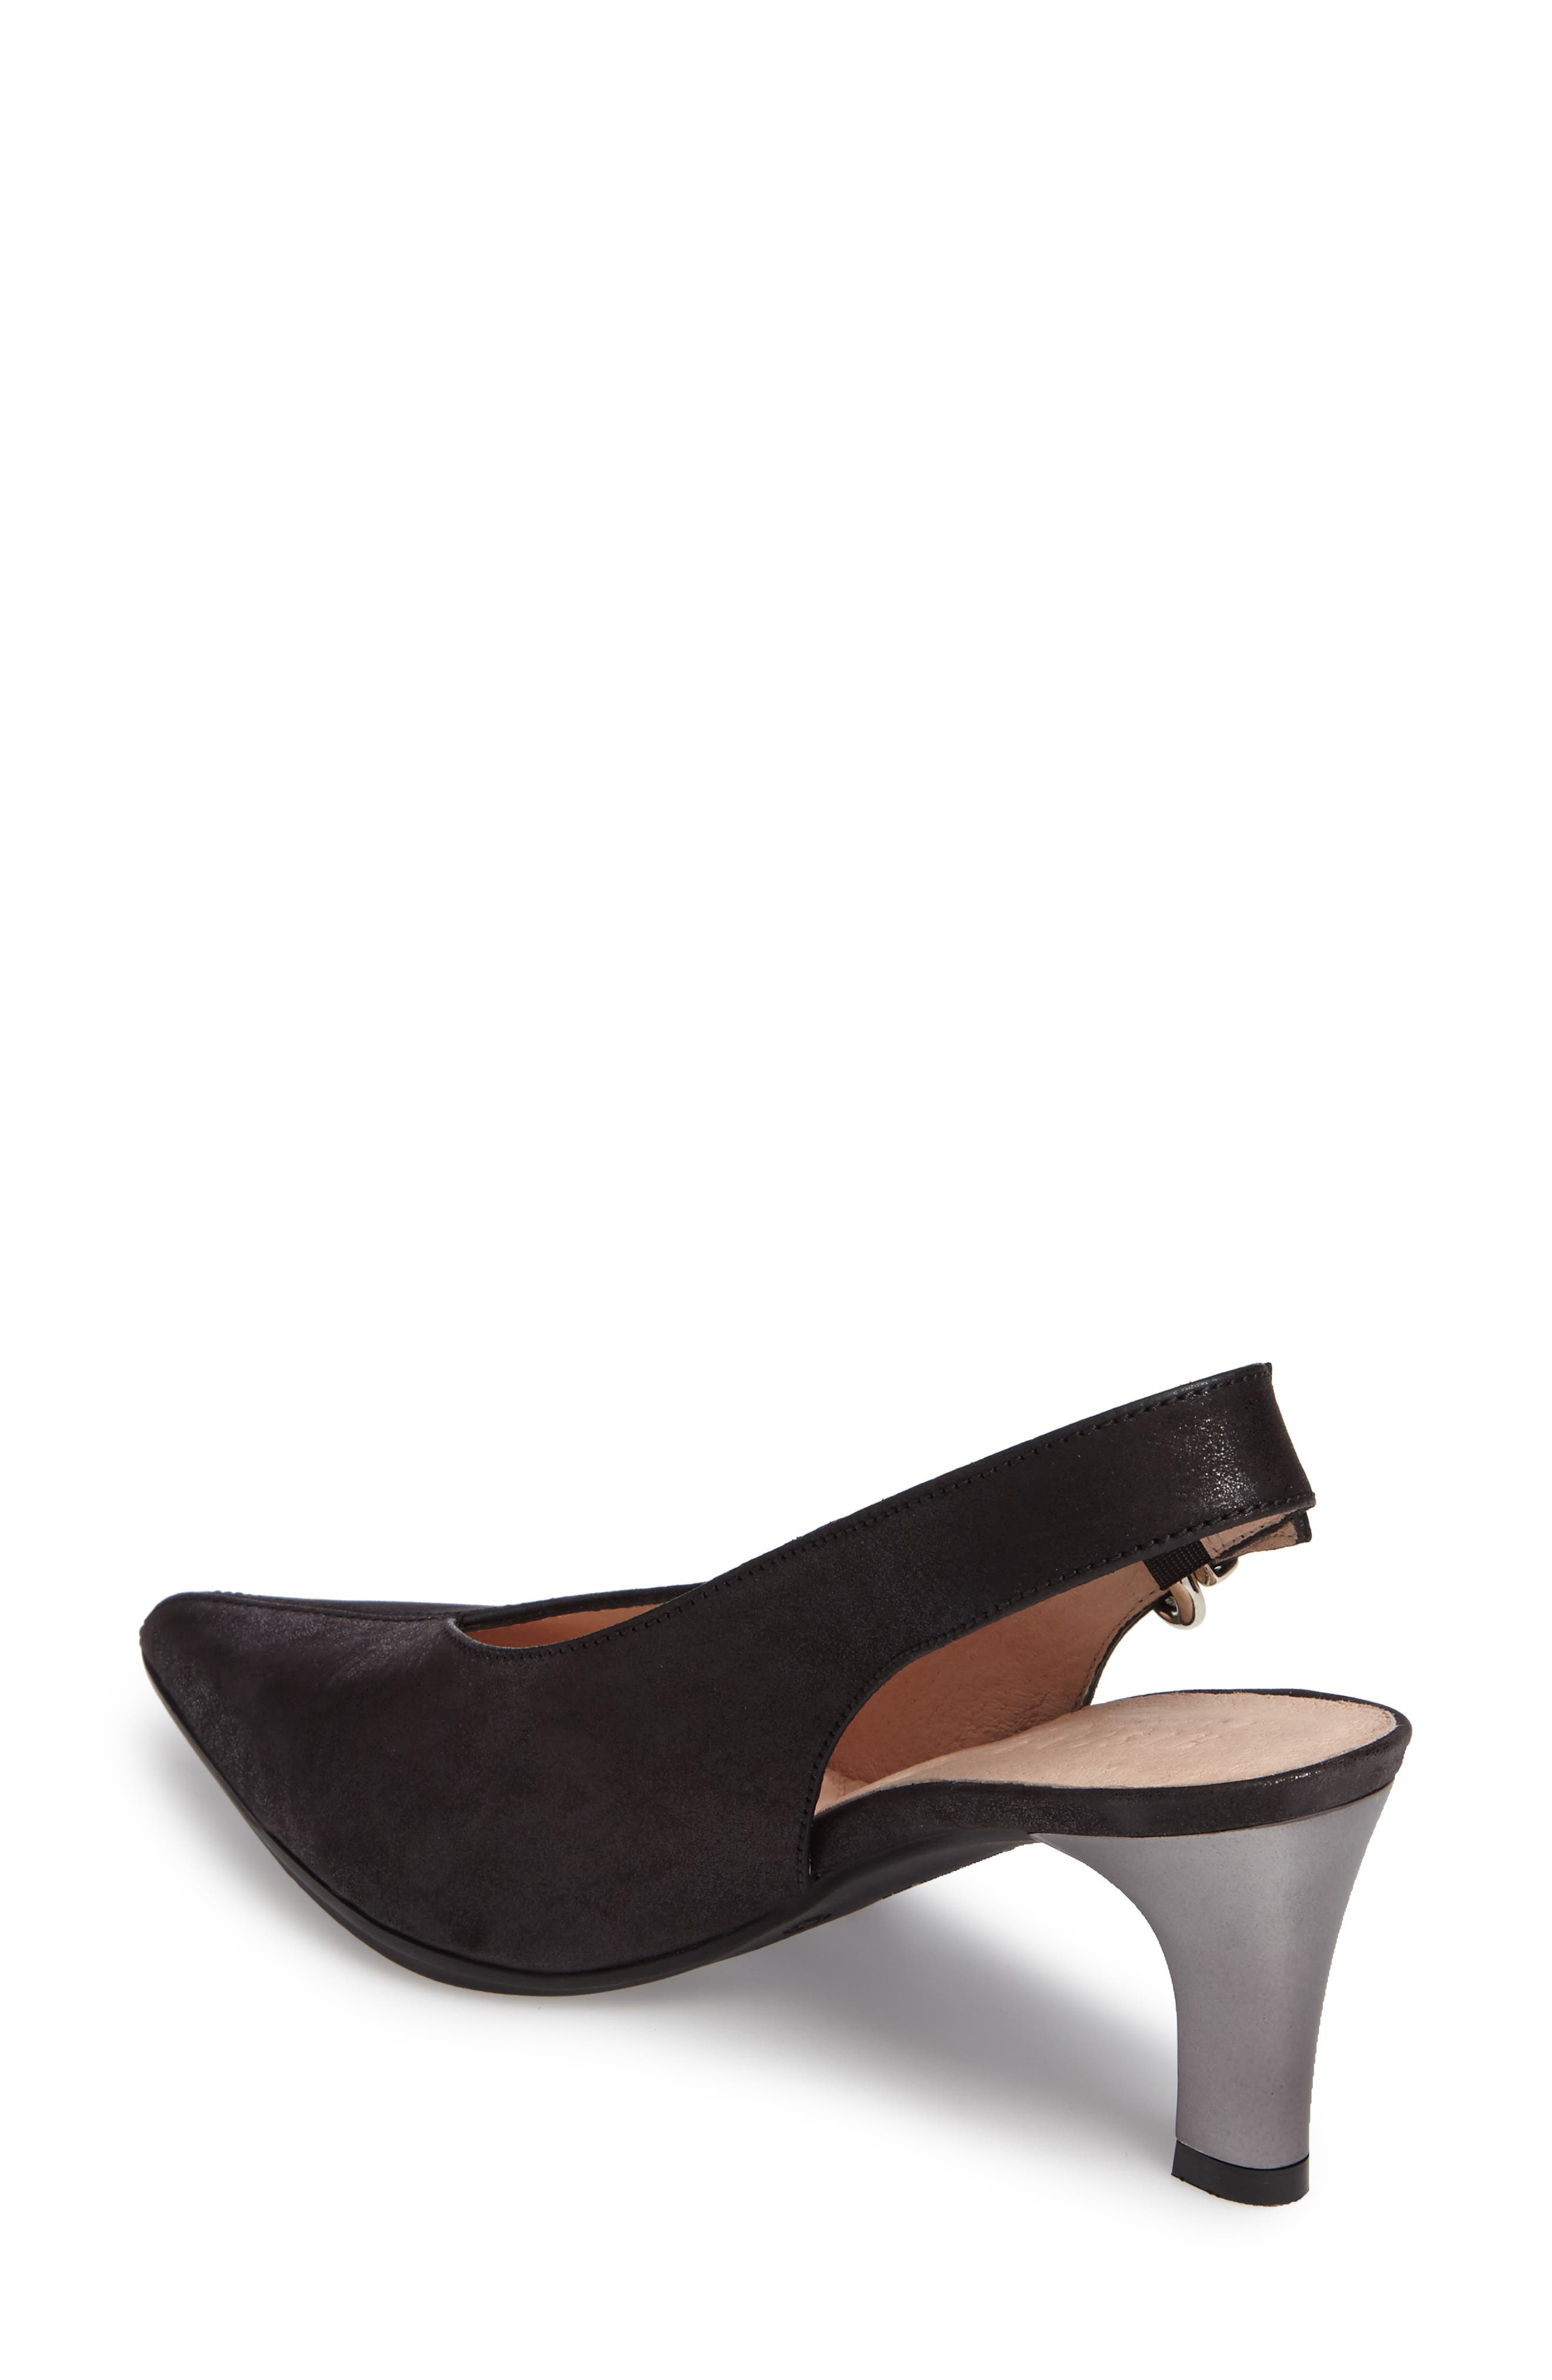 Honey Pointy Toe Slingback Pump,                             Alternate thumbnail 2, color,                             001